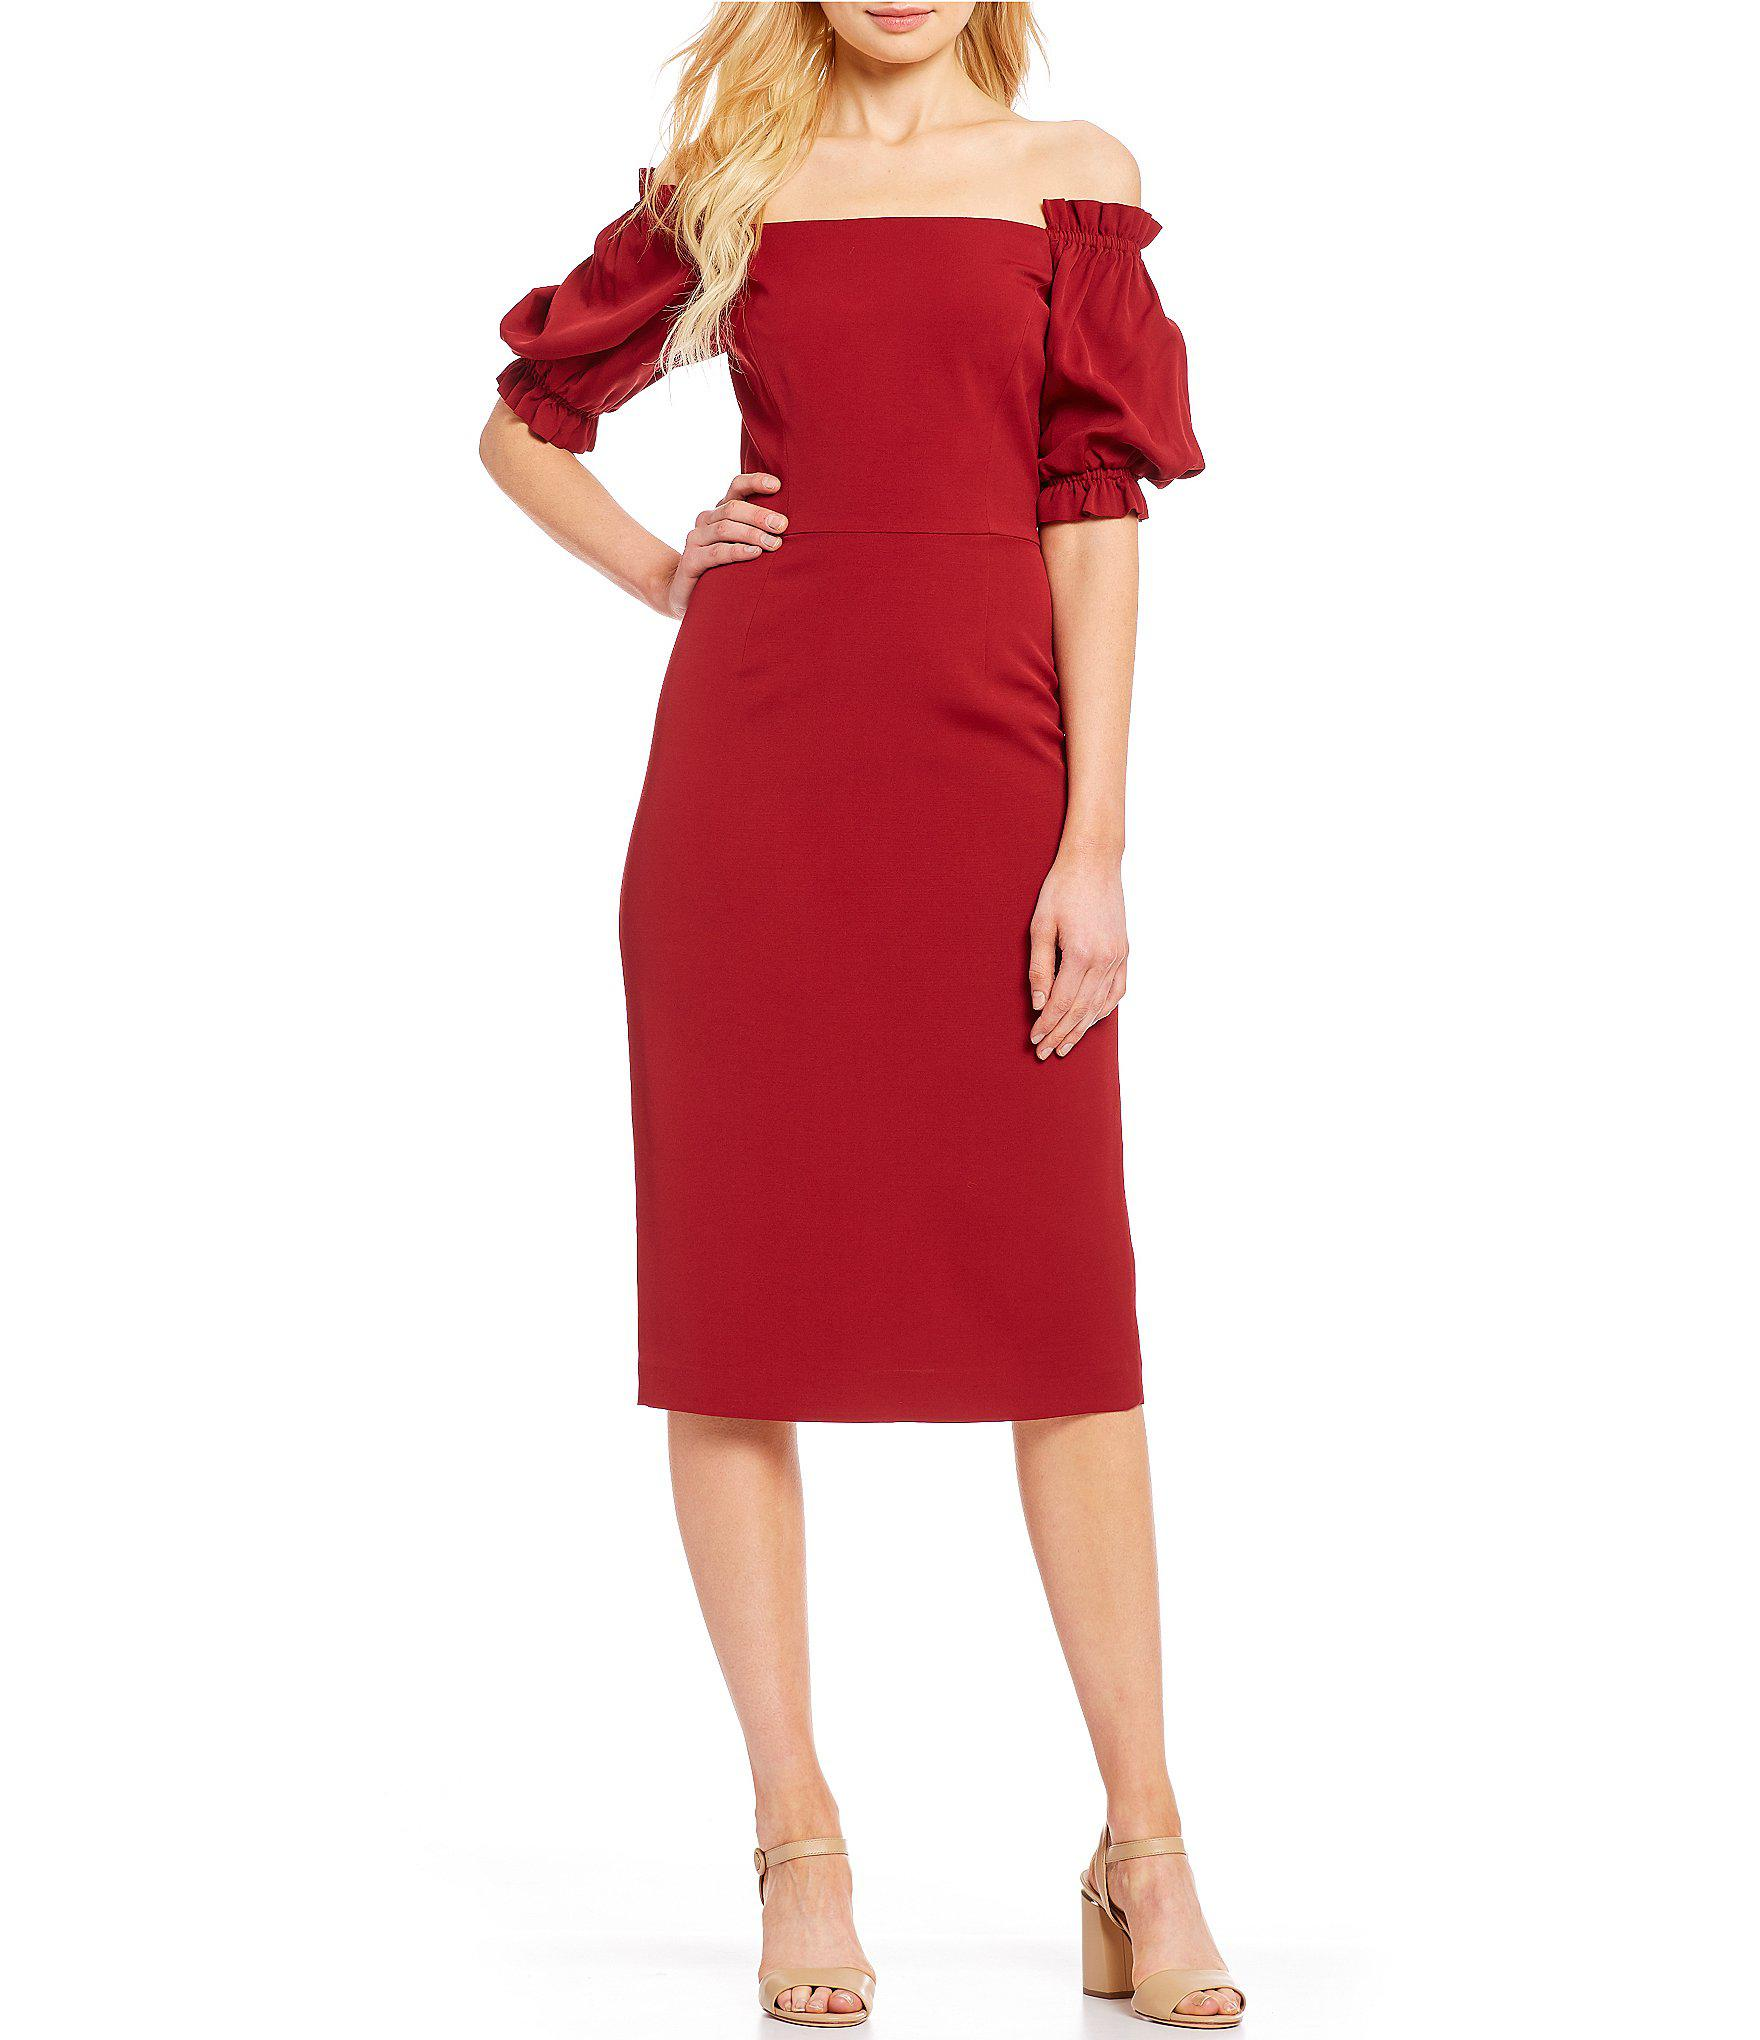 494a0b09a18 Lyst - Antonio Melani Isa Off-the-shoulder Puff Sleeve Midi Length ...